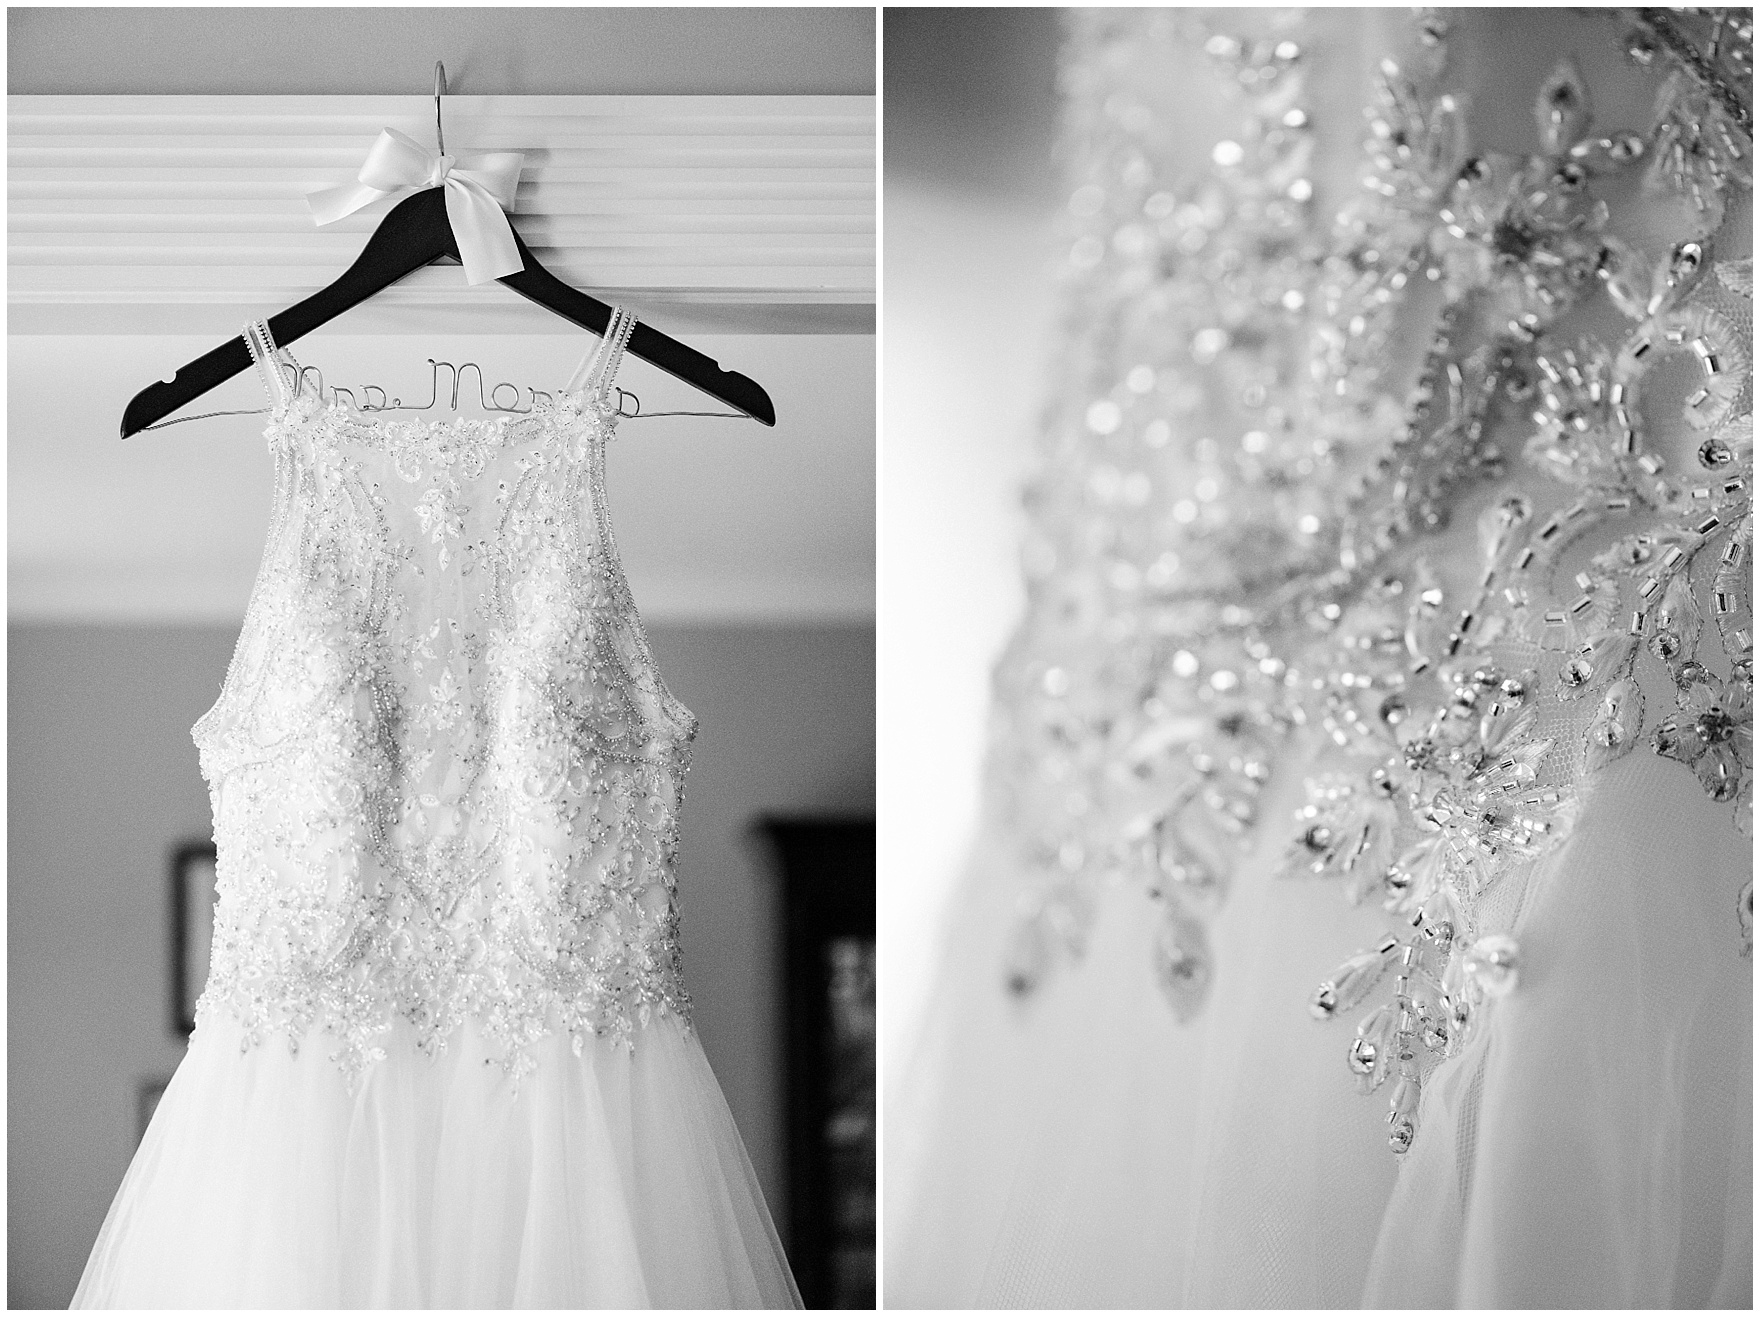 Details of beaded wedding dress hanging in the foyer of a classic home before a Biltmore Country Club Barrington wedding.